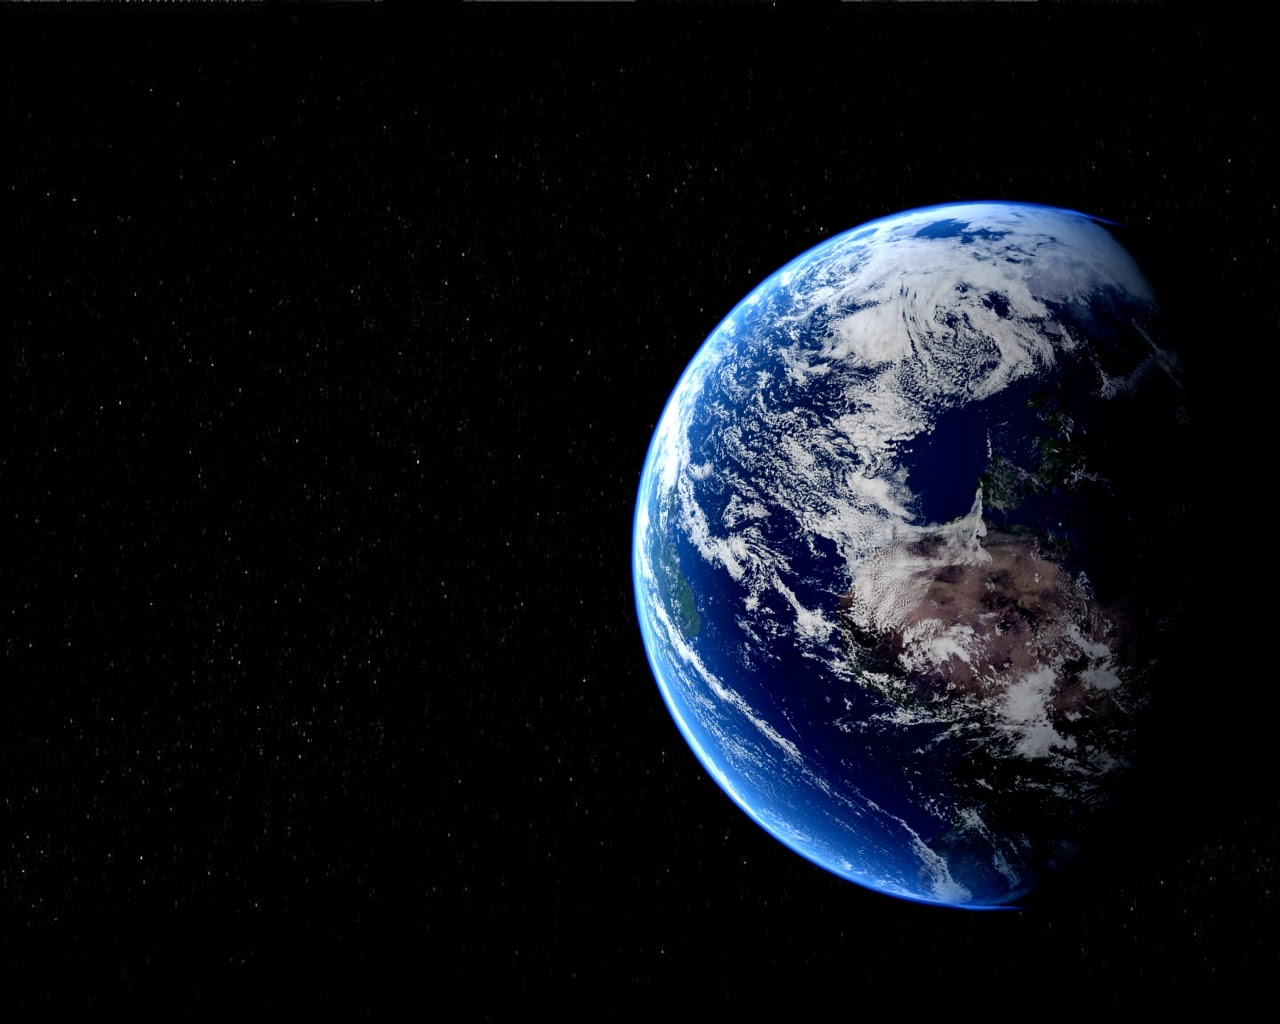 earth from space wallpaper space wallpaper